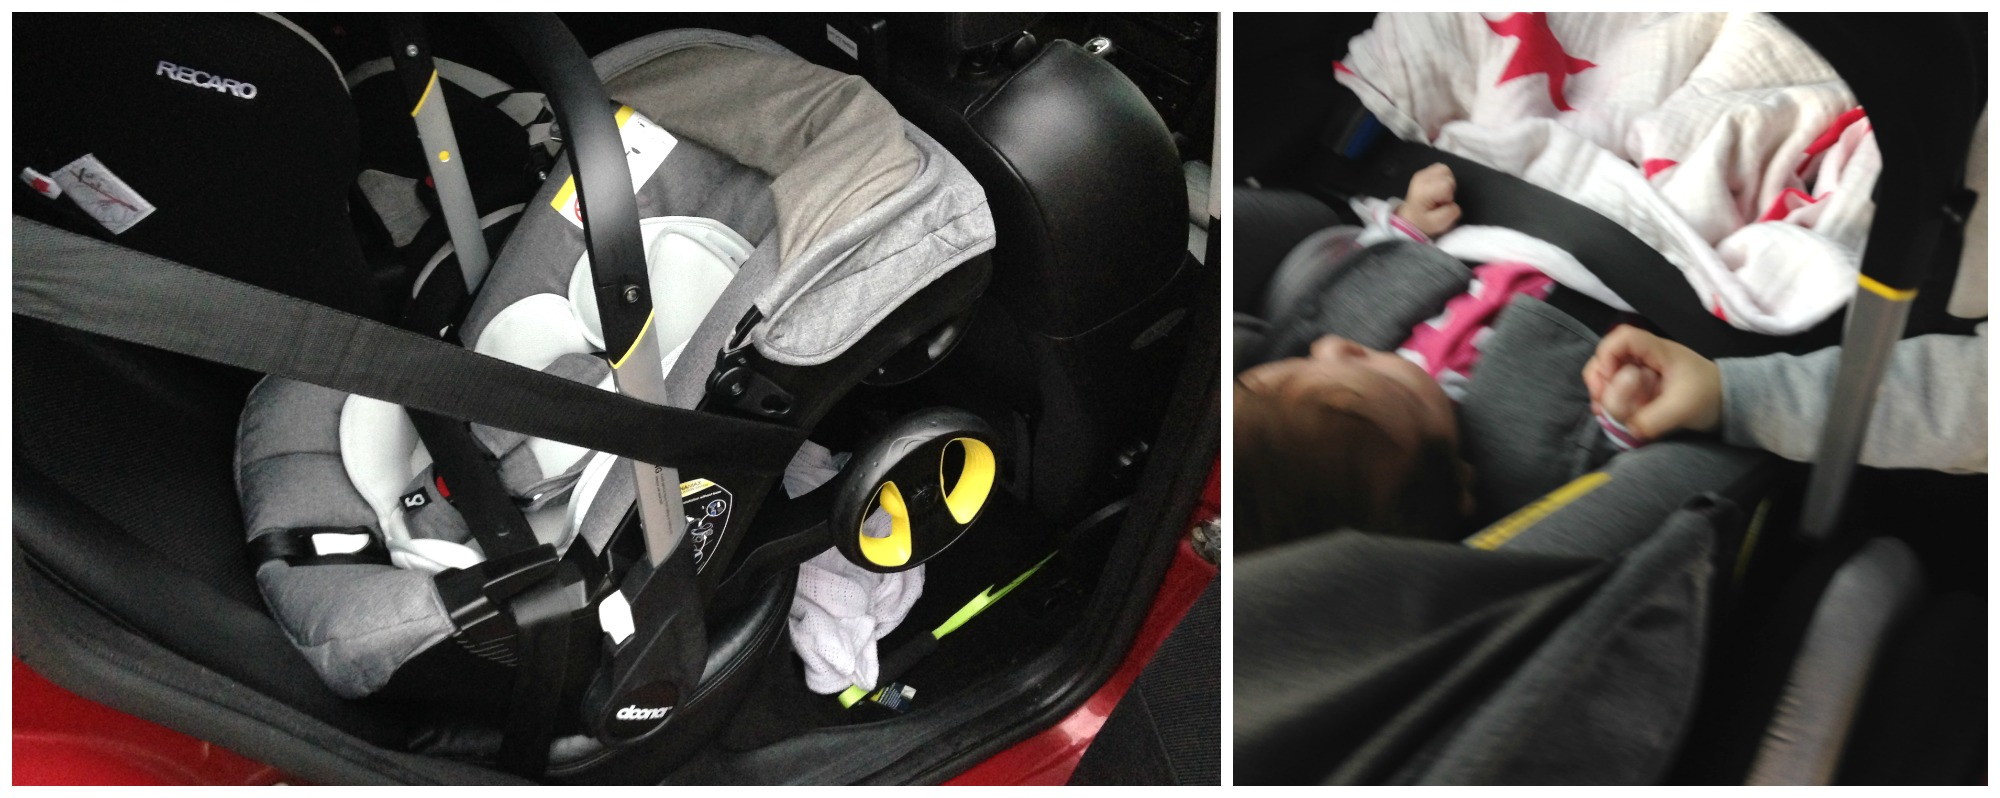 Where Can I Buy A Doona Car Seat